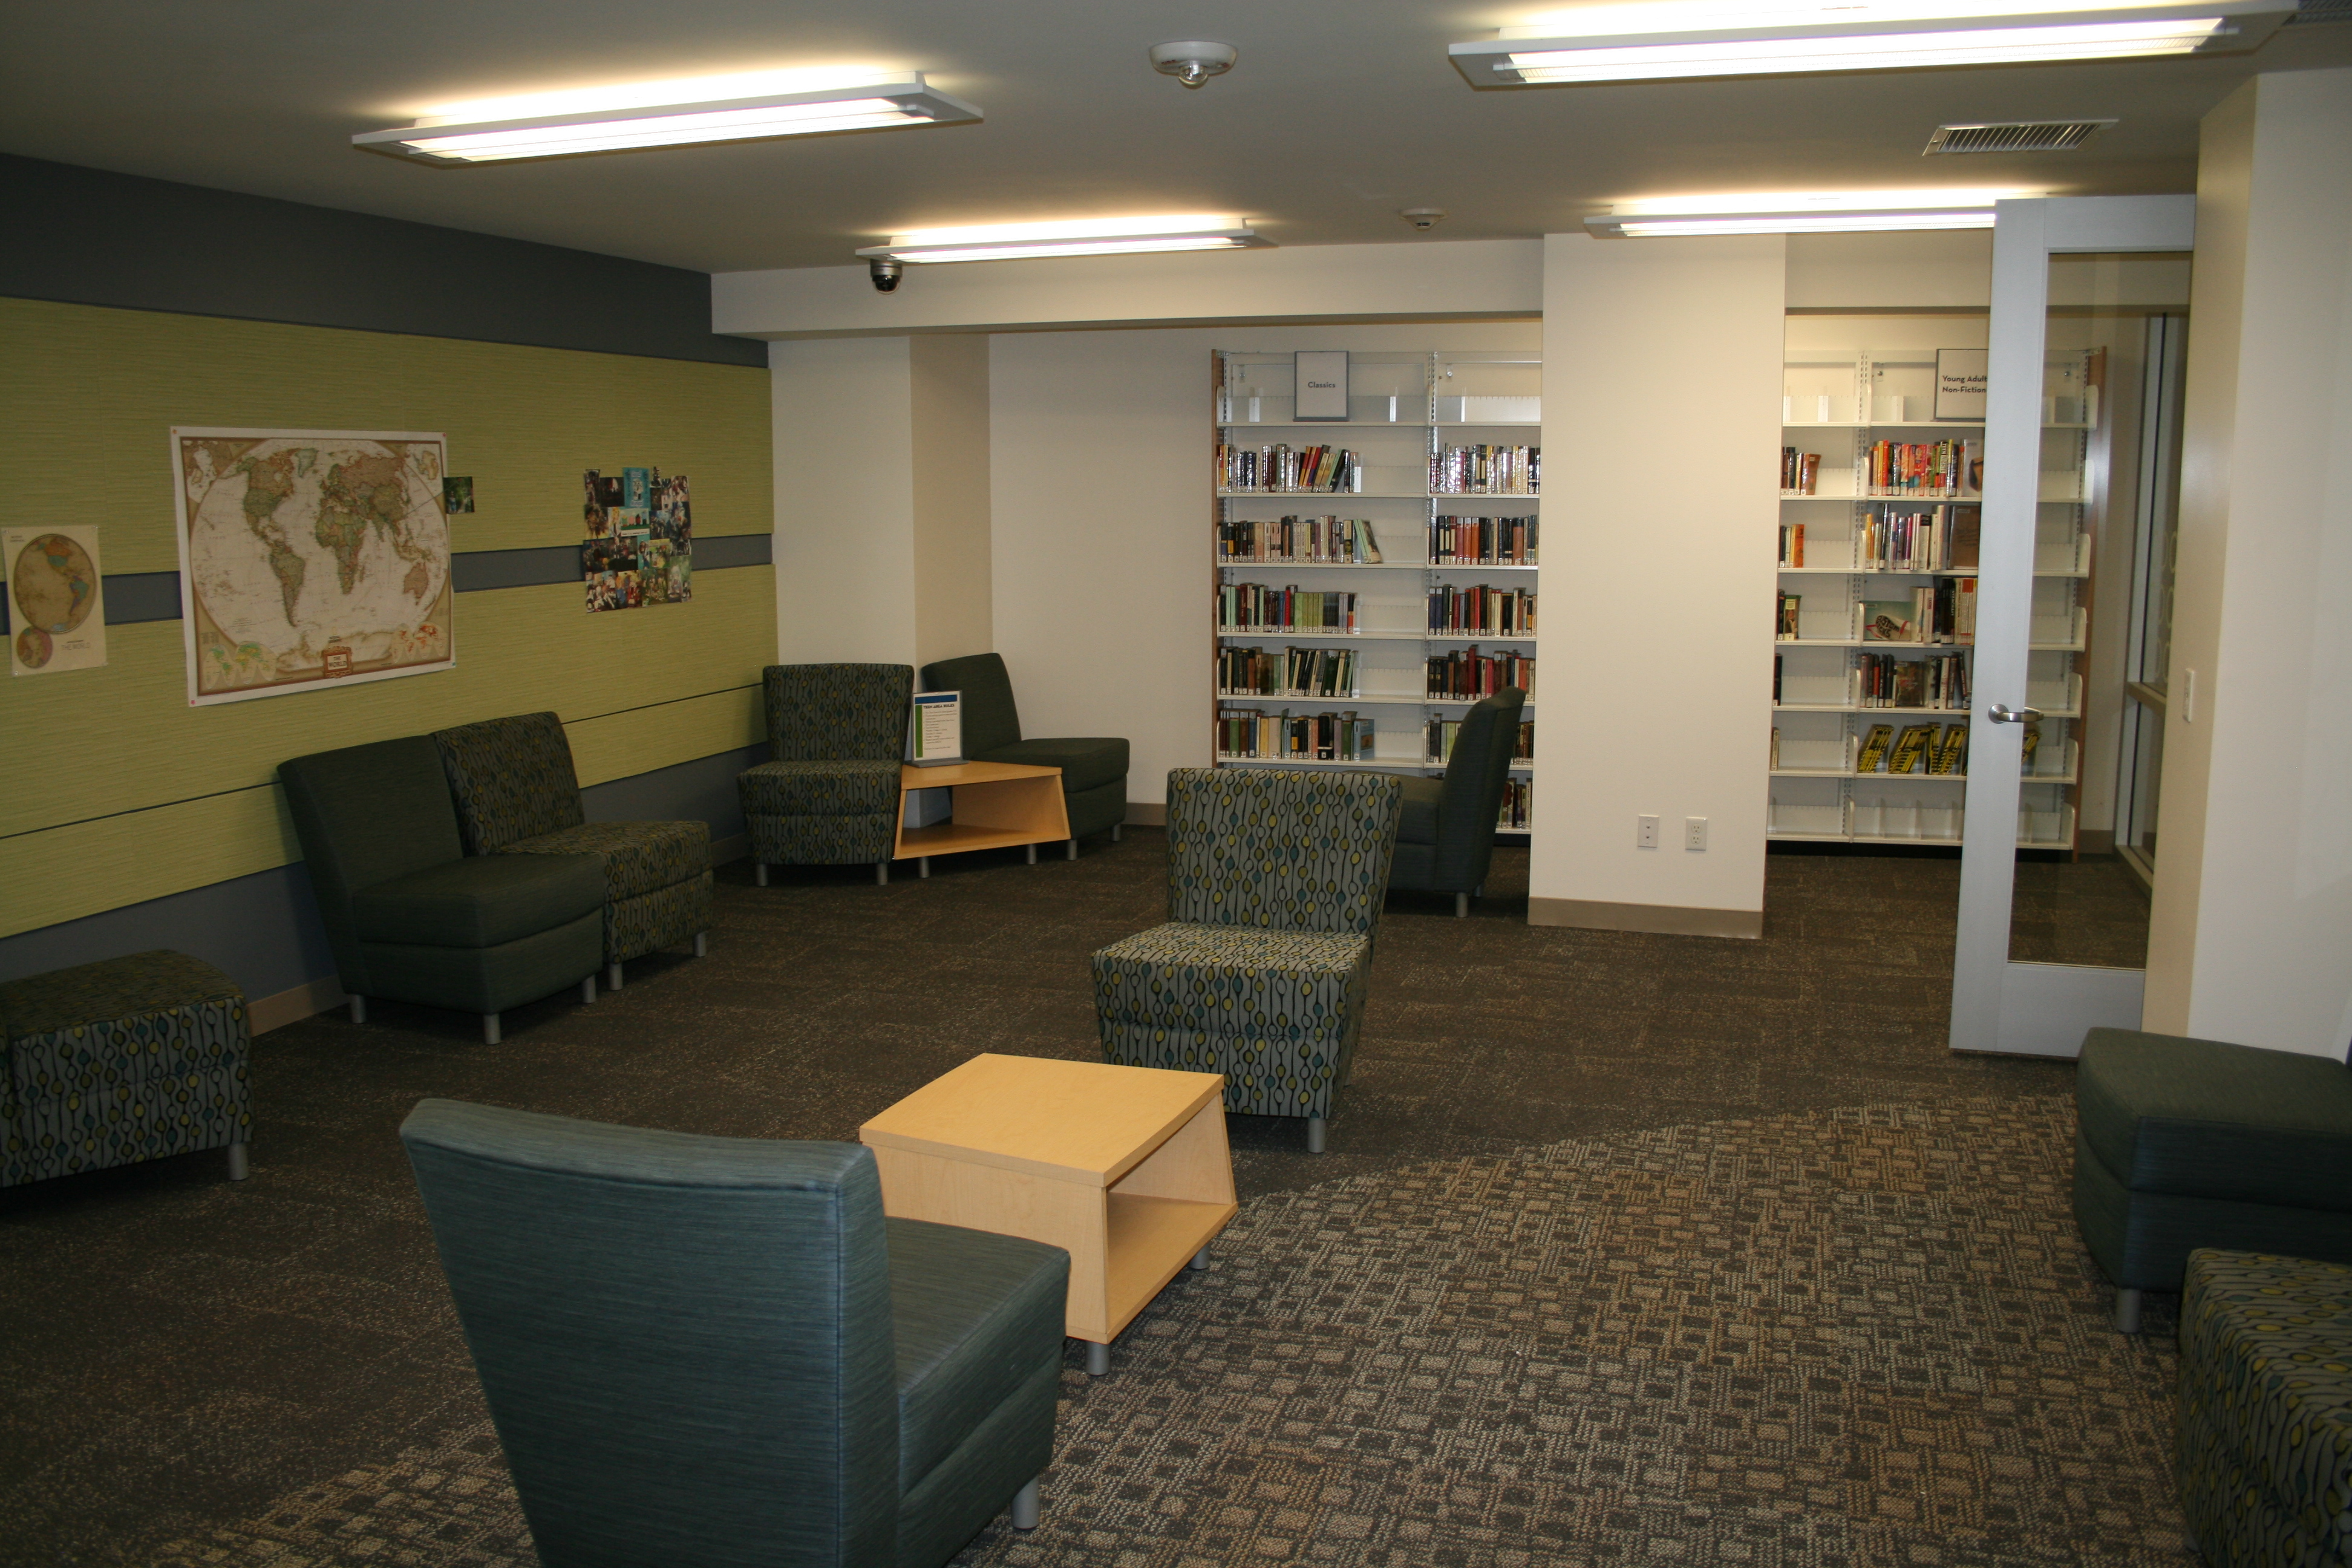 Fullerton Public Library's teen area active room